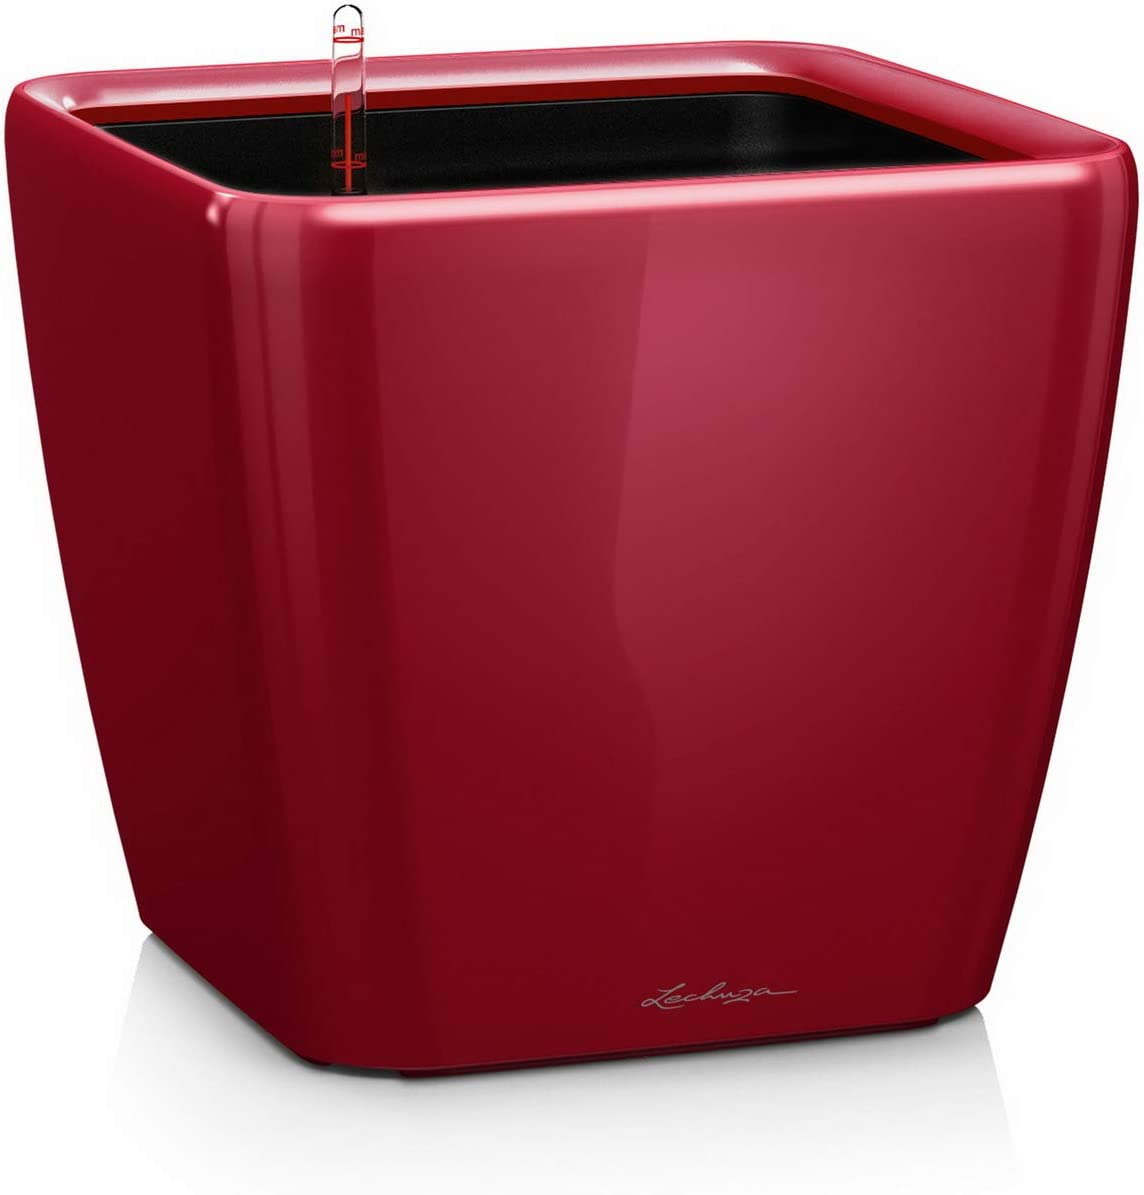 LECHUZA Quadro LS 28 Self Watering Planter Garden Flower Plant Pot Indoor/Outdoor Table Planter with Drainage Hole and Plant Substrate Poly Resin H26 L28 W28 cm Scarlet Red High-Gloss